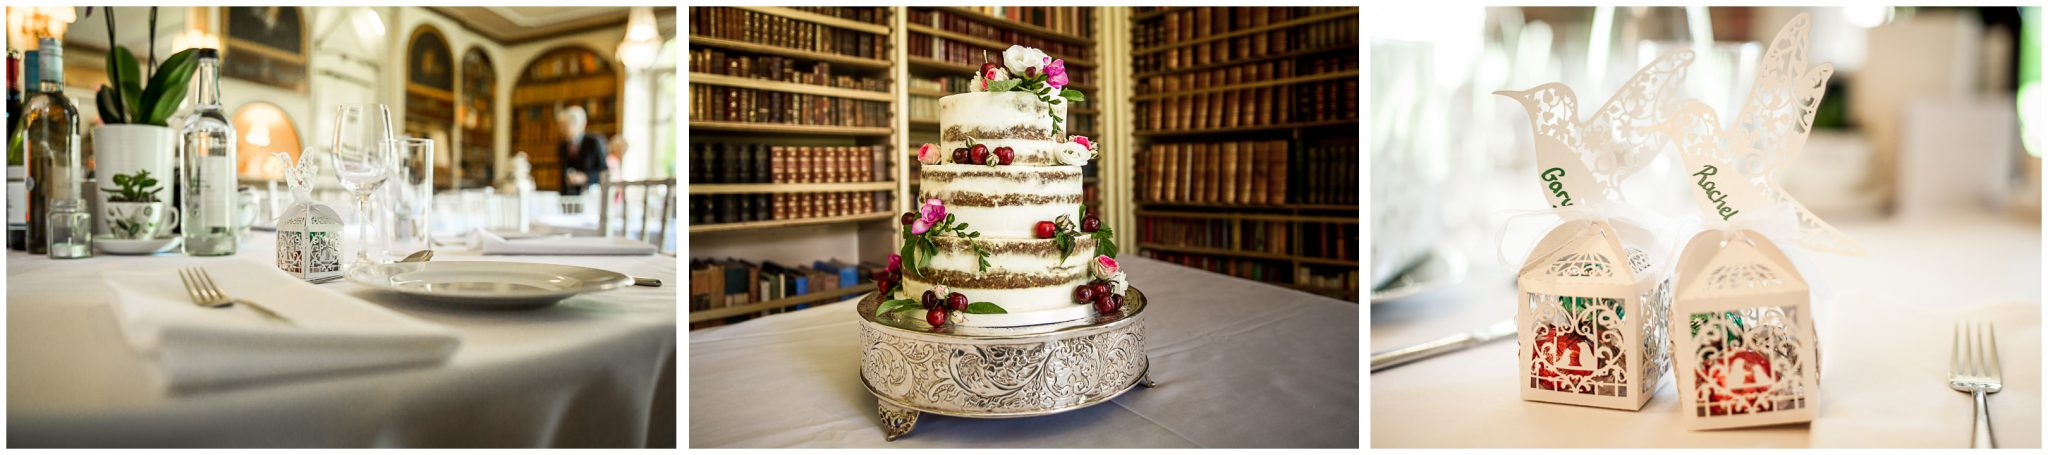 Avington Park wedding photography cake and table details